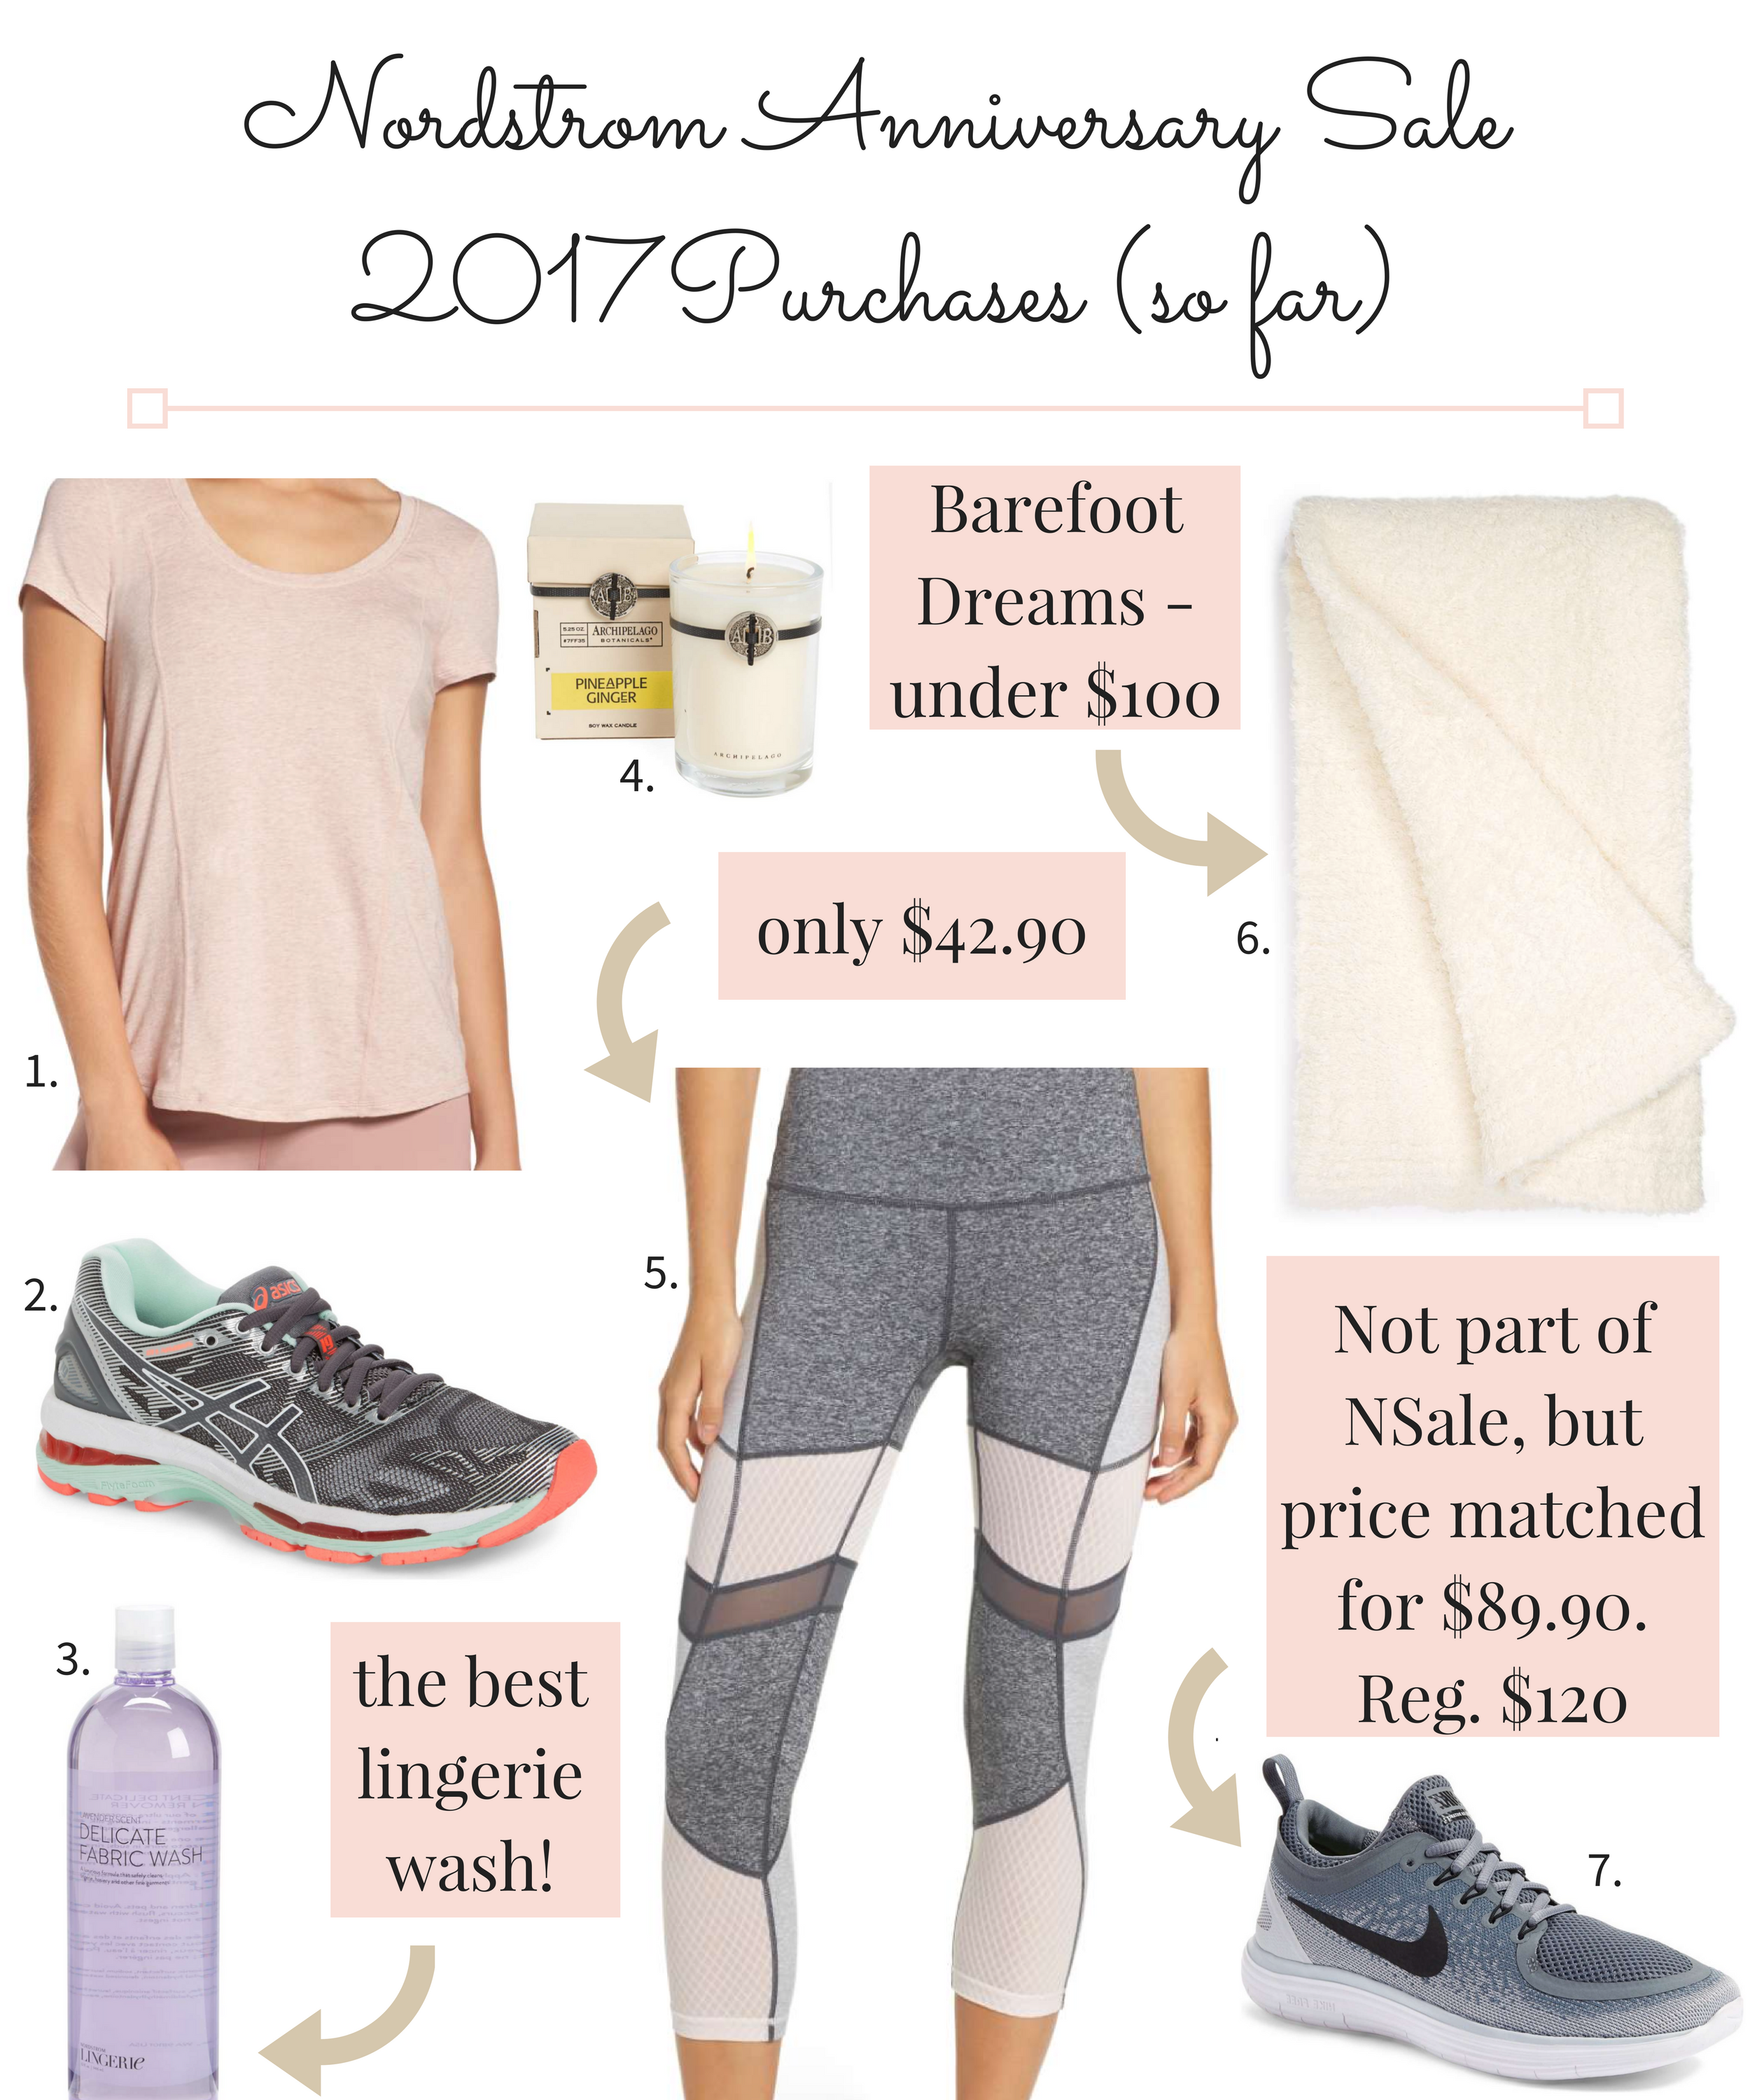 Nordstrom Anniversary Sale 2017 Early Access Purchases